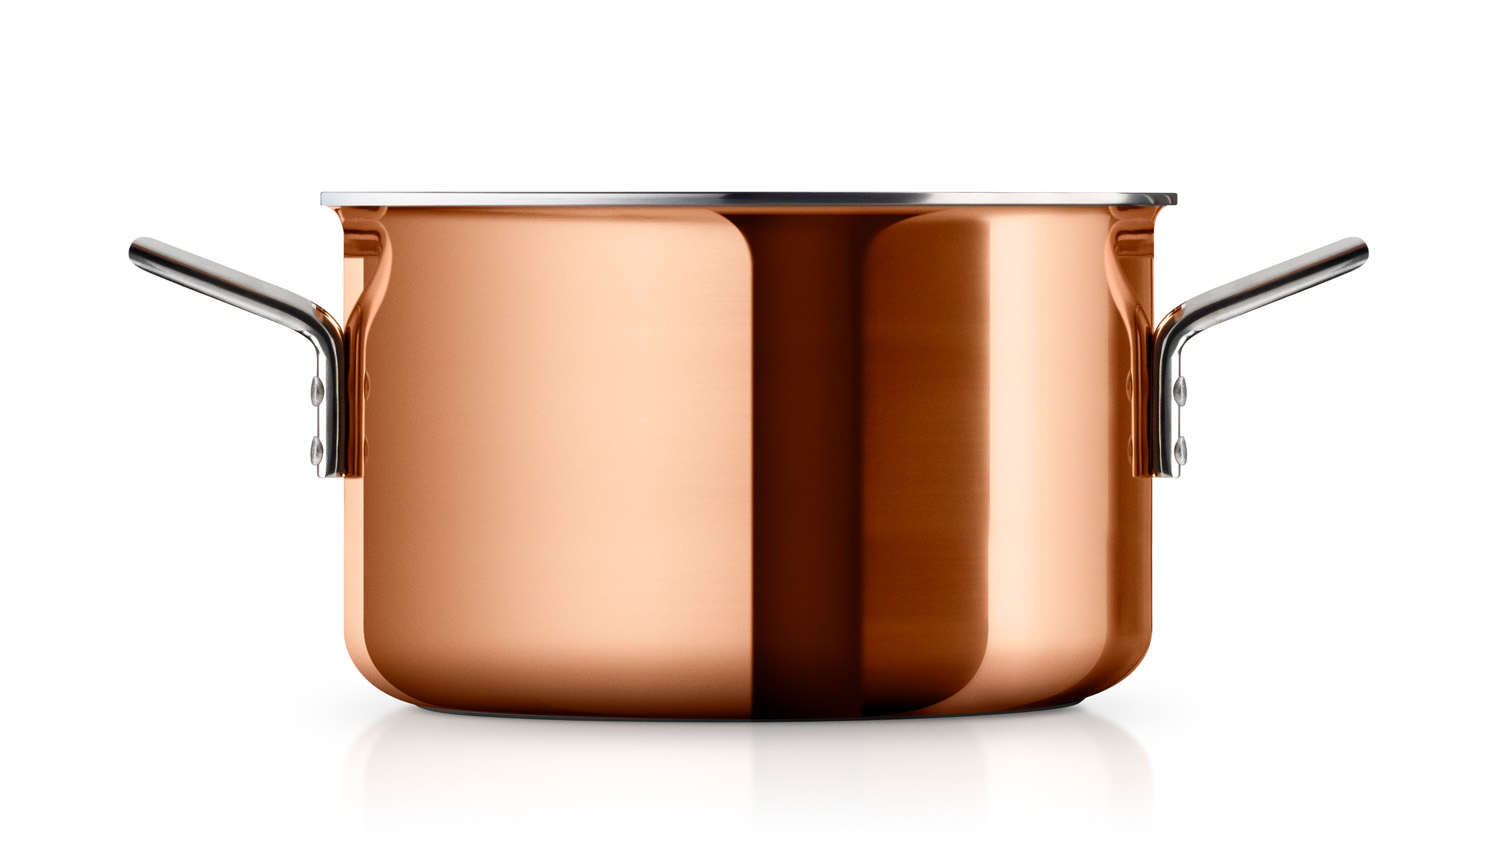 <p>Copper cookware has completely unique boiling and frying properties, and reacts quickly to changes in temperature – an important property when preparing sauces and other fine cuisine.&nbsp;</p> <p><strong>The Copper series is good for: Simmer dishes, sauces, soups, flambéing and sautéing.</strong></p>